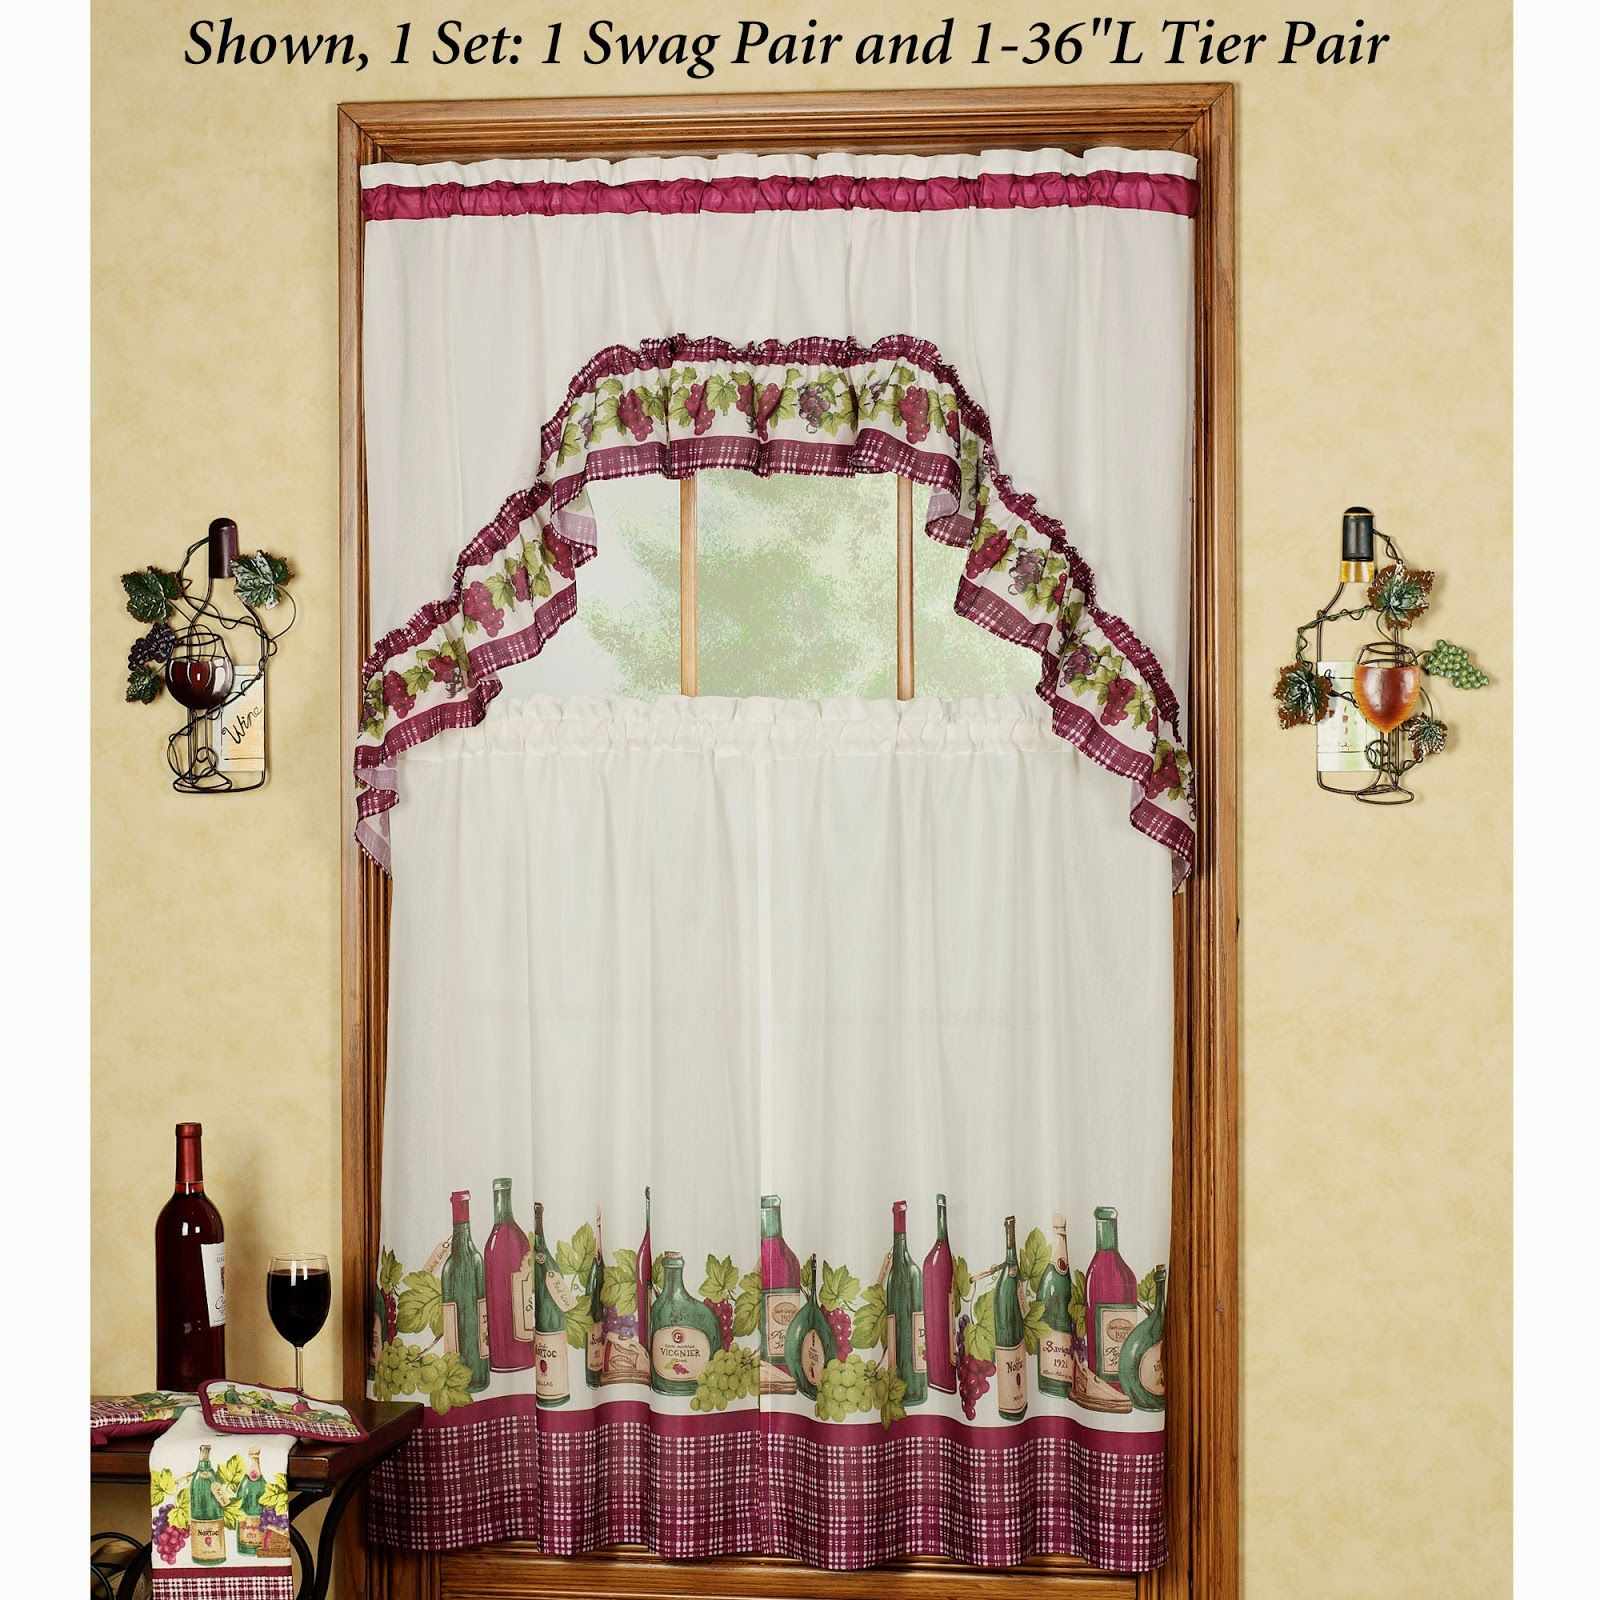 Kitchen Curtains Green Gingham. Kitchen Curtains Grapes And Wine.